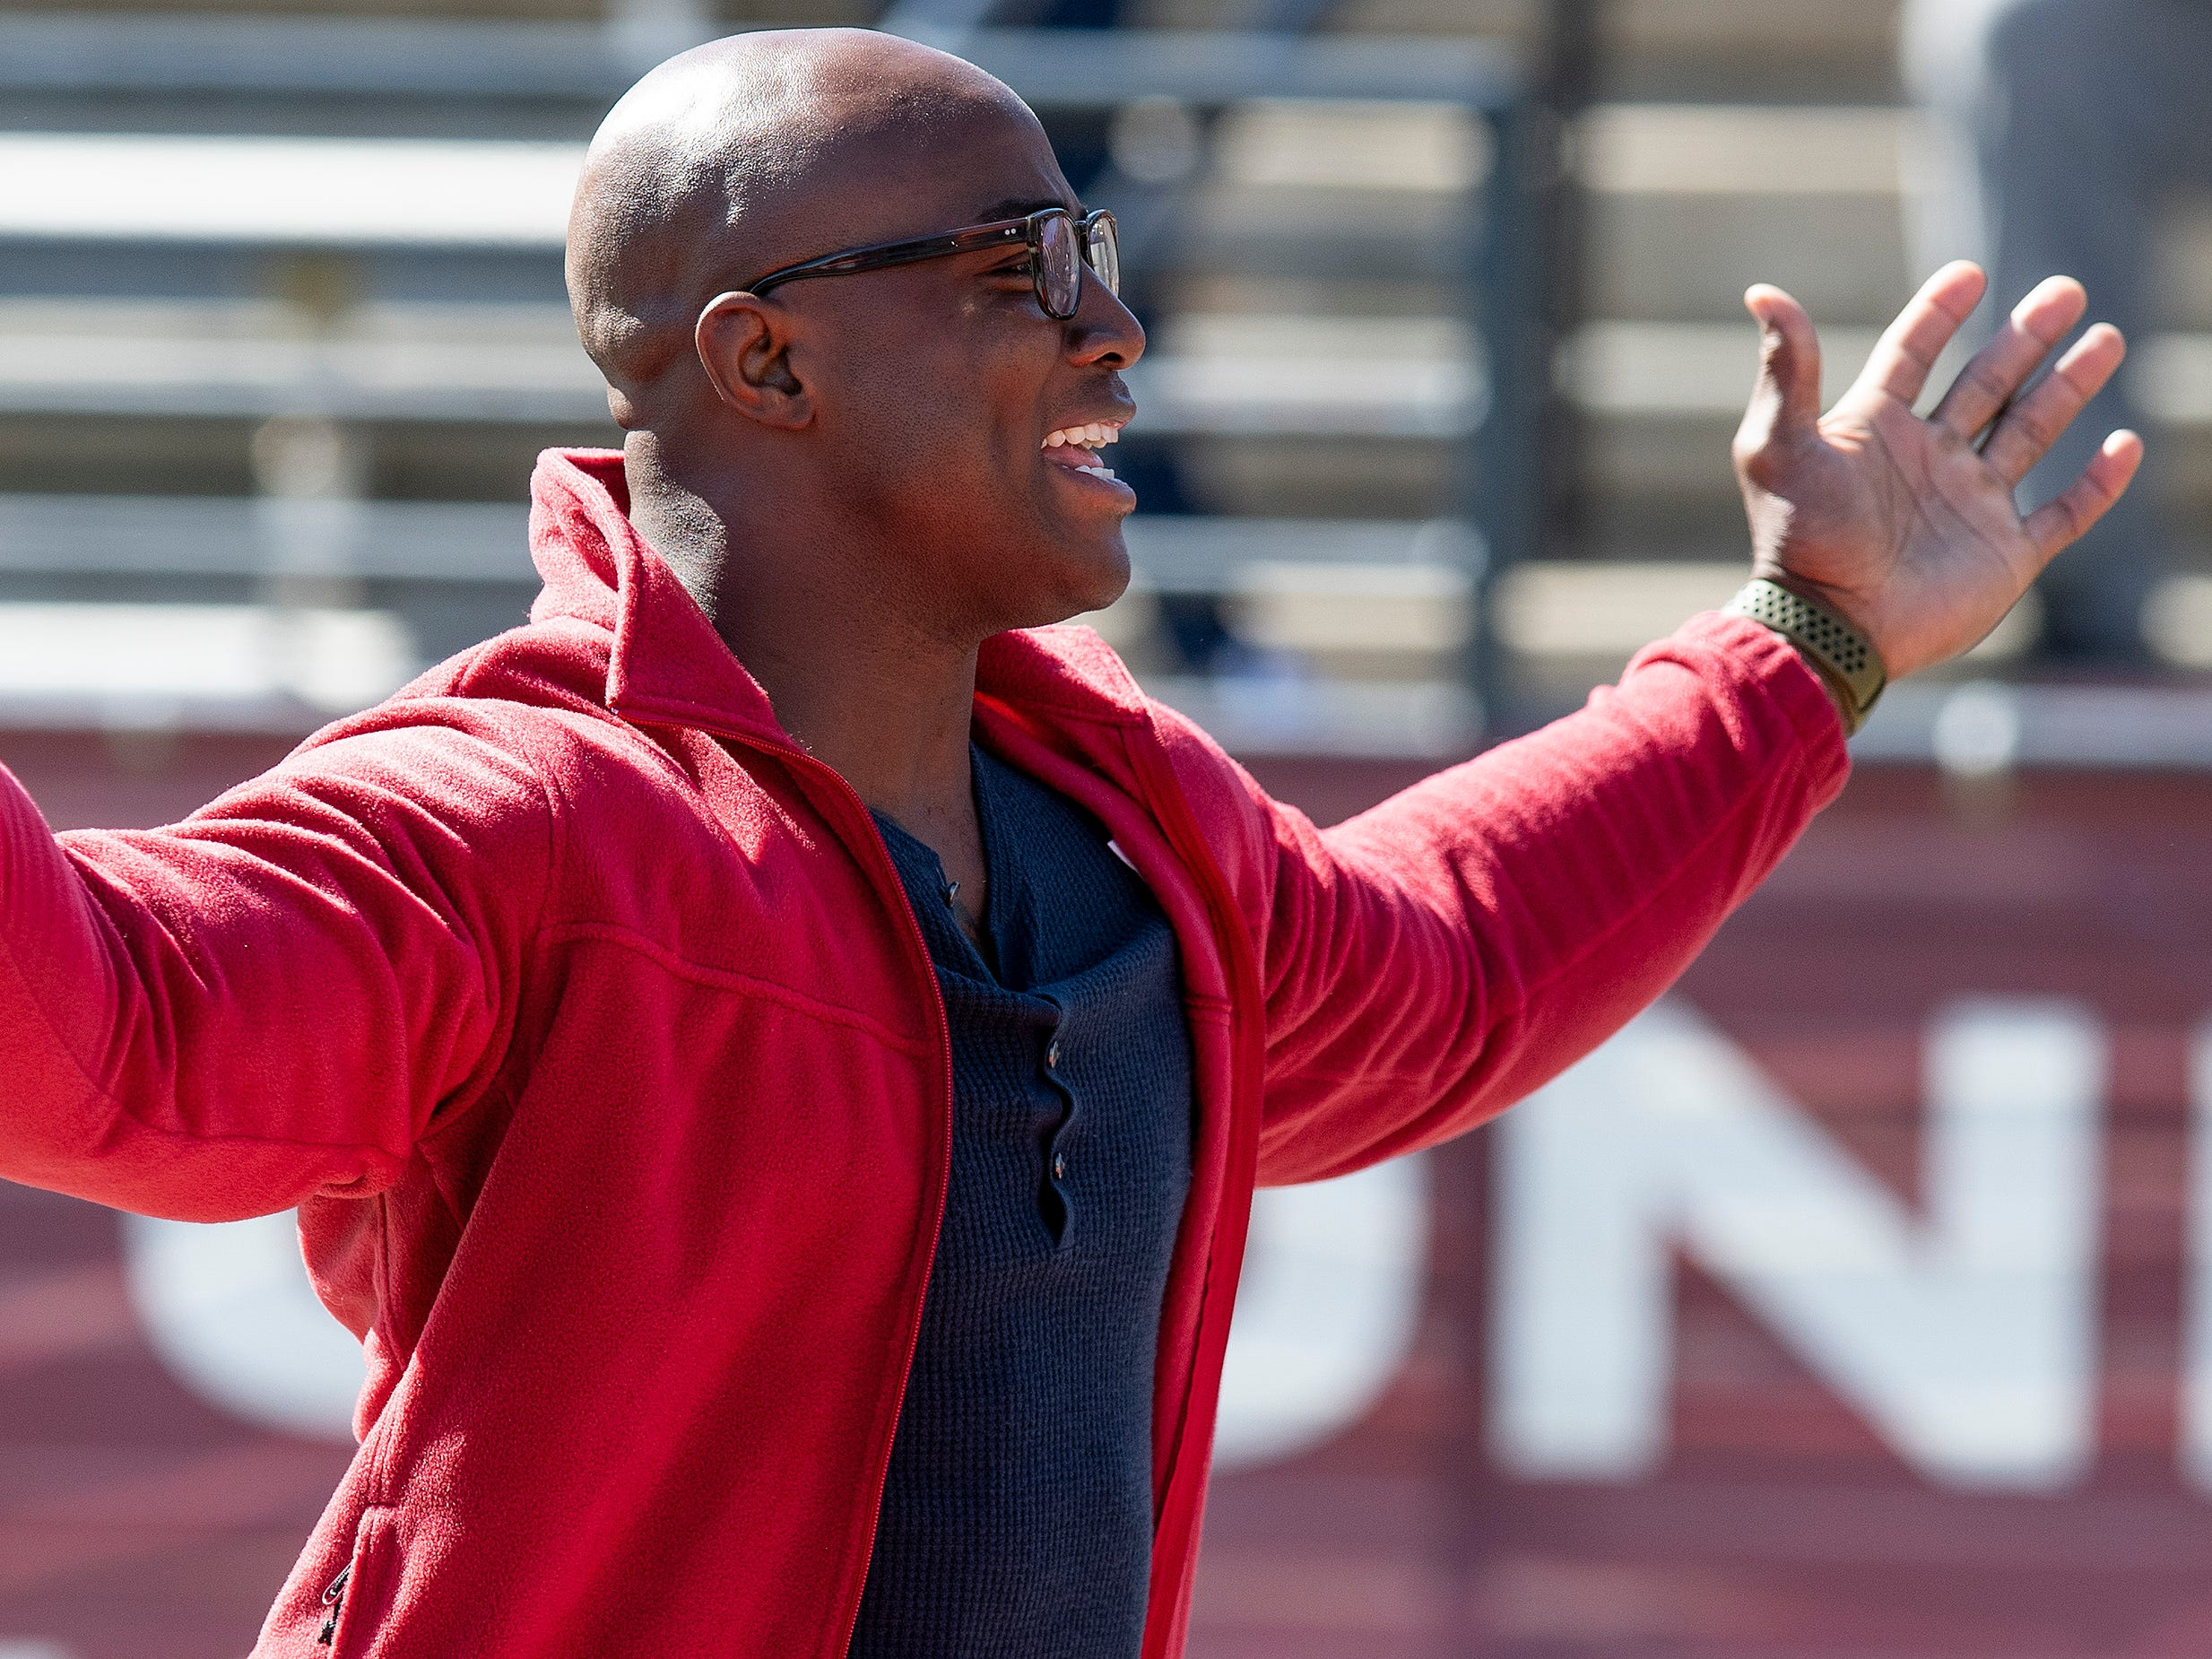 Former Troy University and NFL player DeMarcus Ware attends the Troy University T-Day spring scrimmage game in Troy, Ala., on Saturday April 20, 2019.